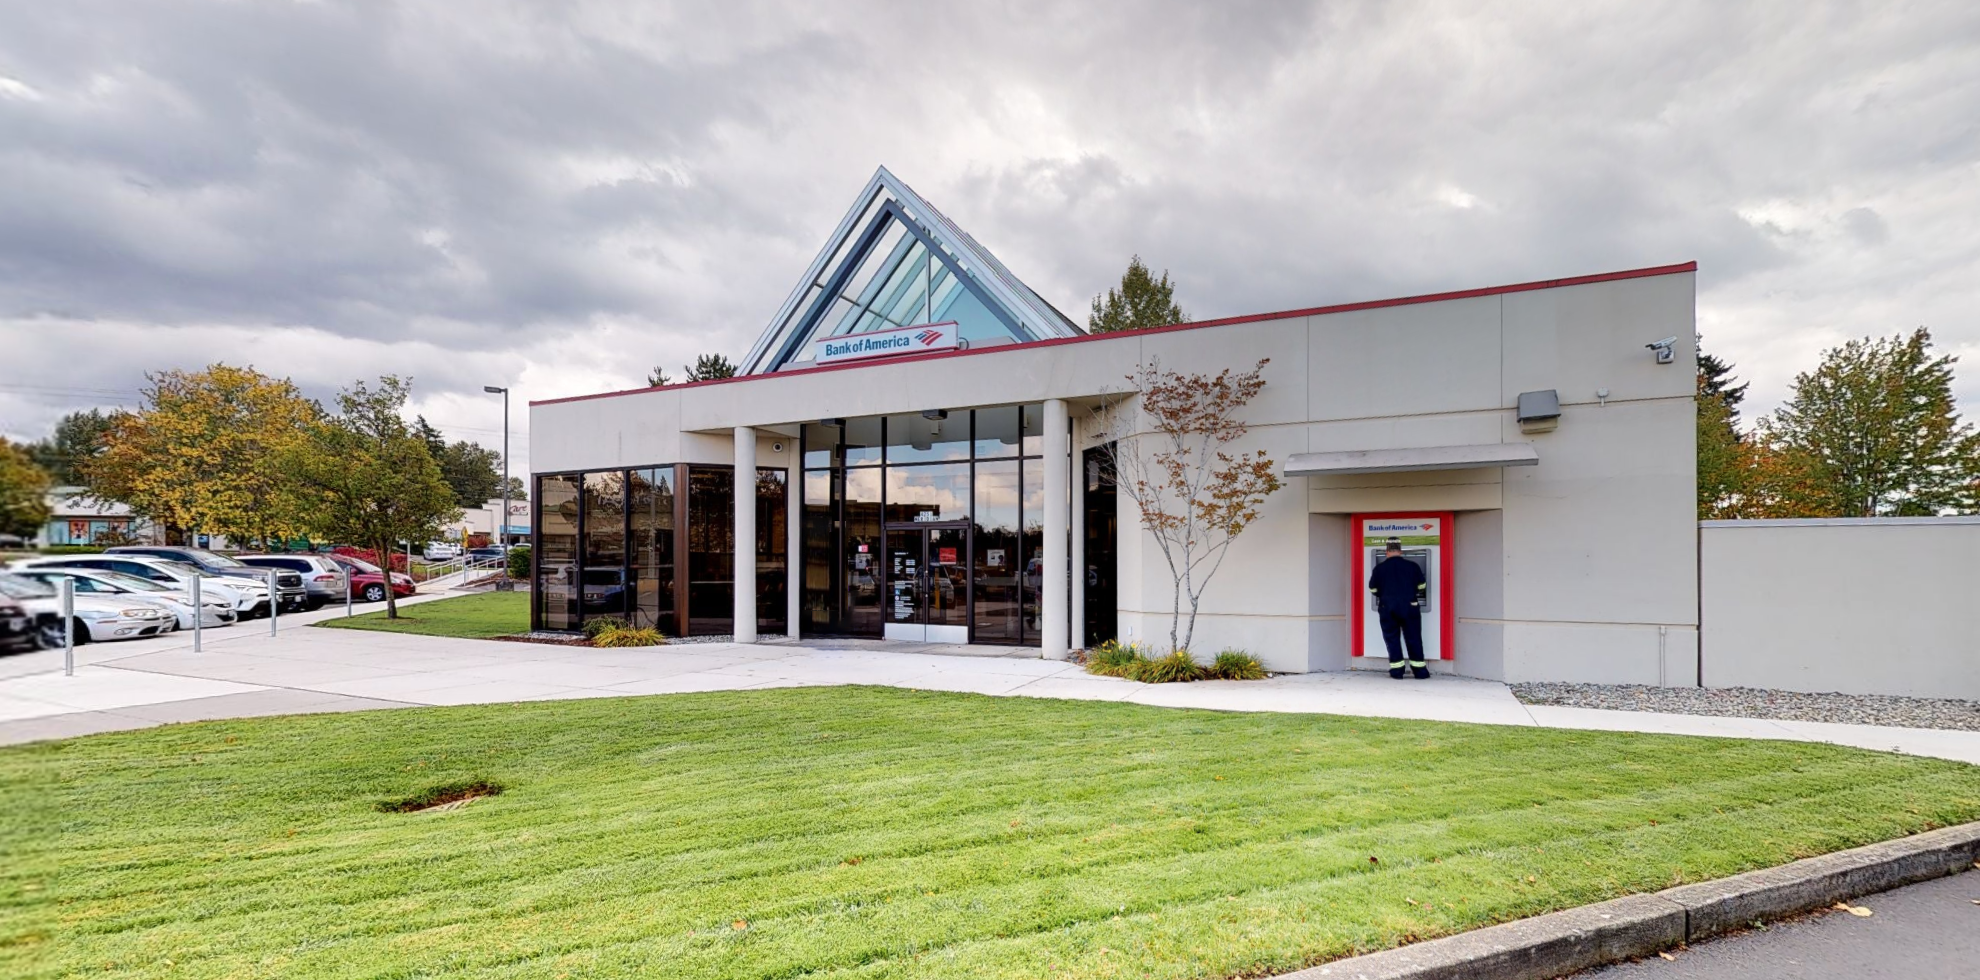 Bank of America financial center with drive-thru ATM | 4251 Guide Meridian, Bellingham, WA 98226